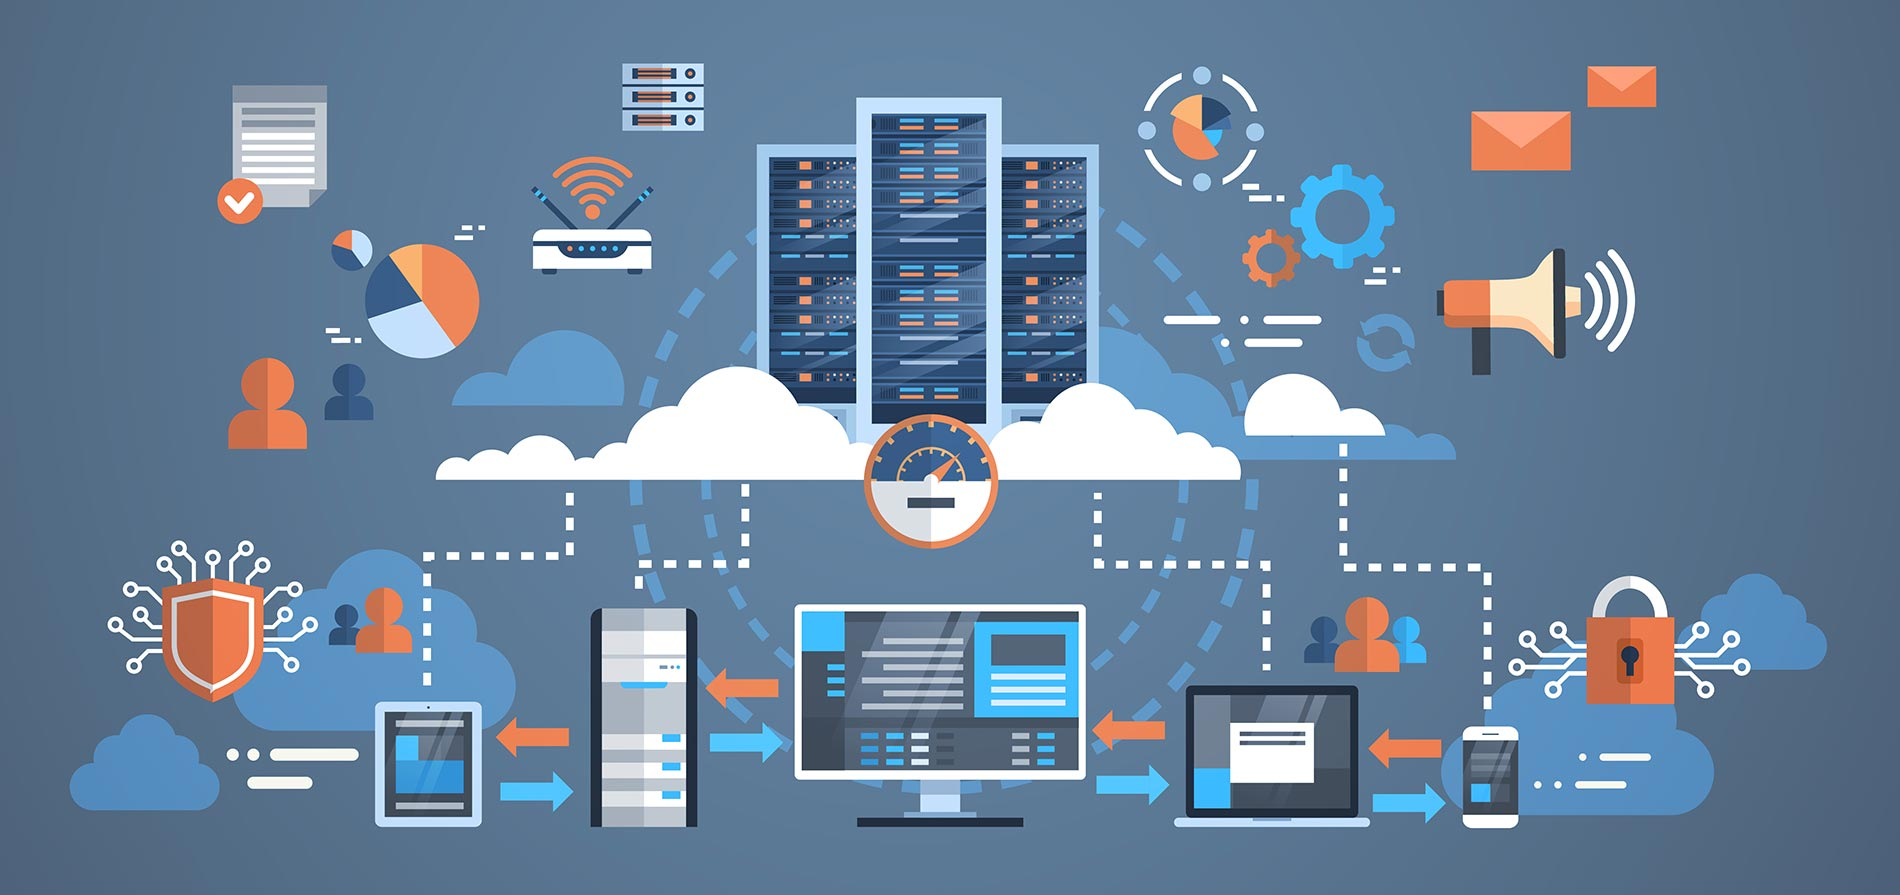 Cloud Web Hosting Services to Consider